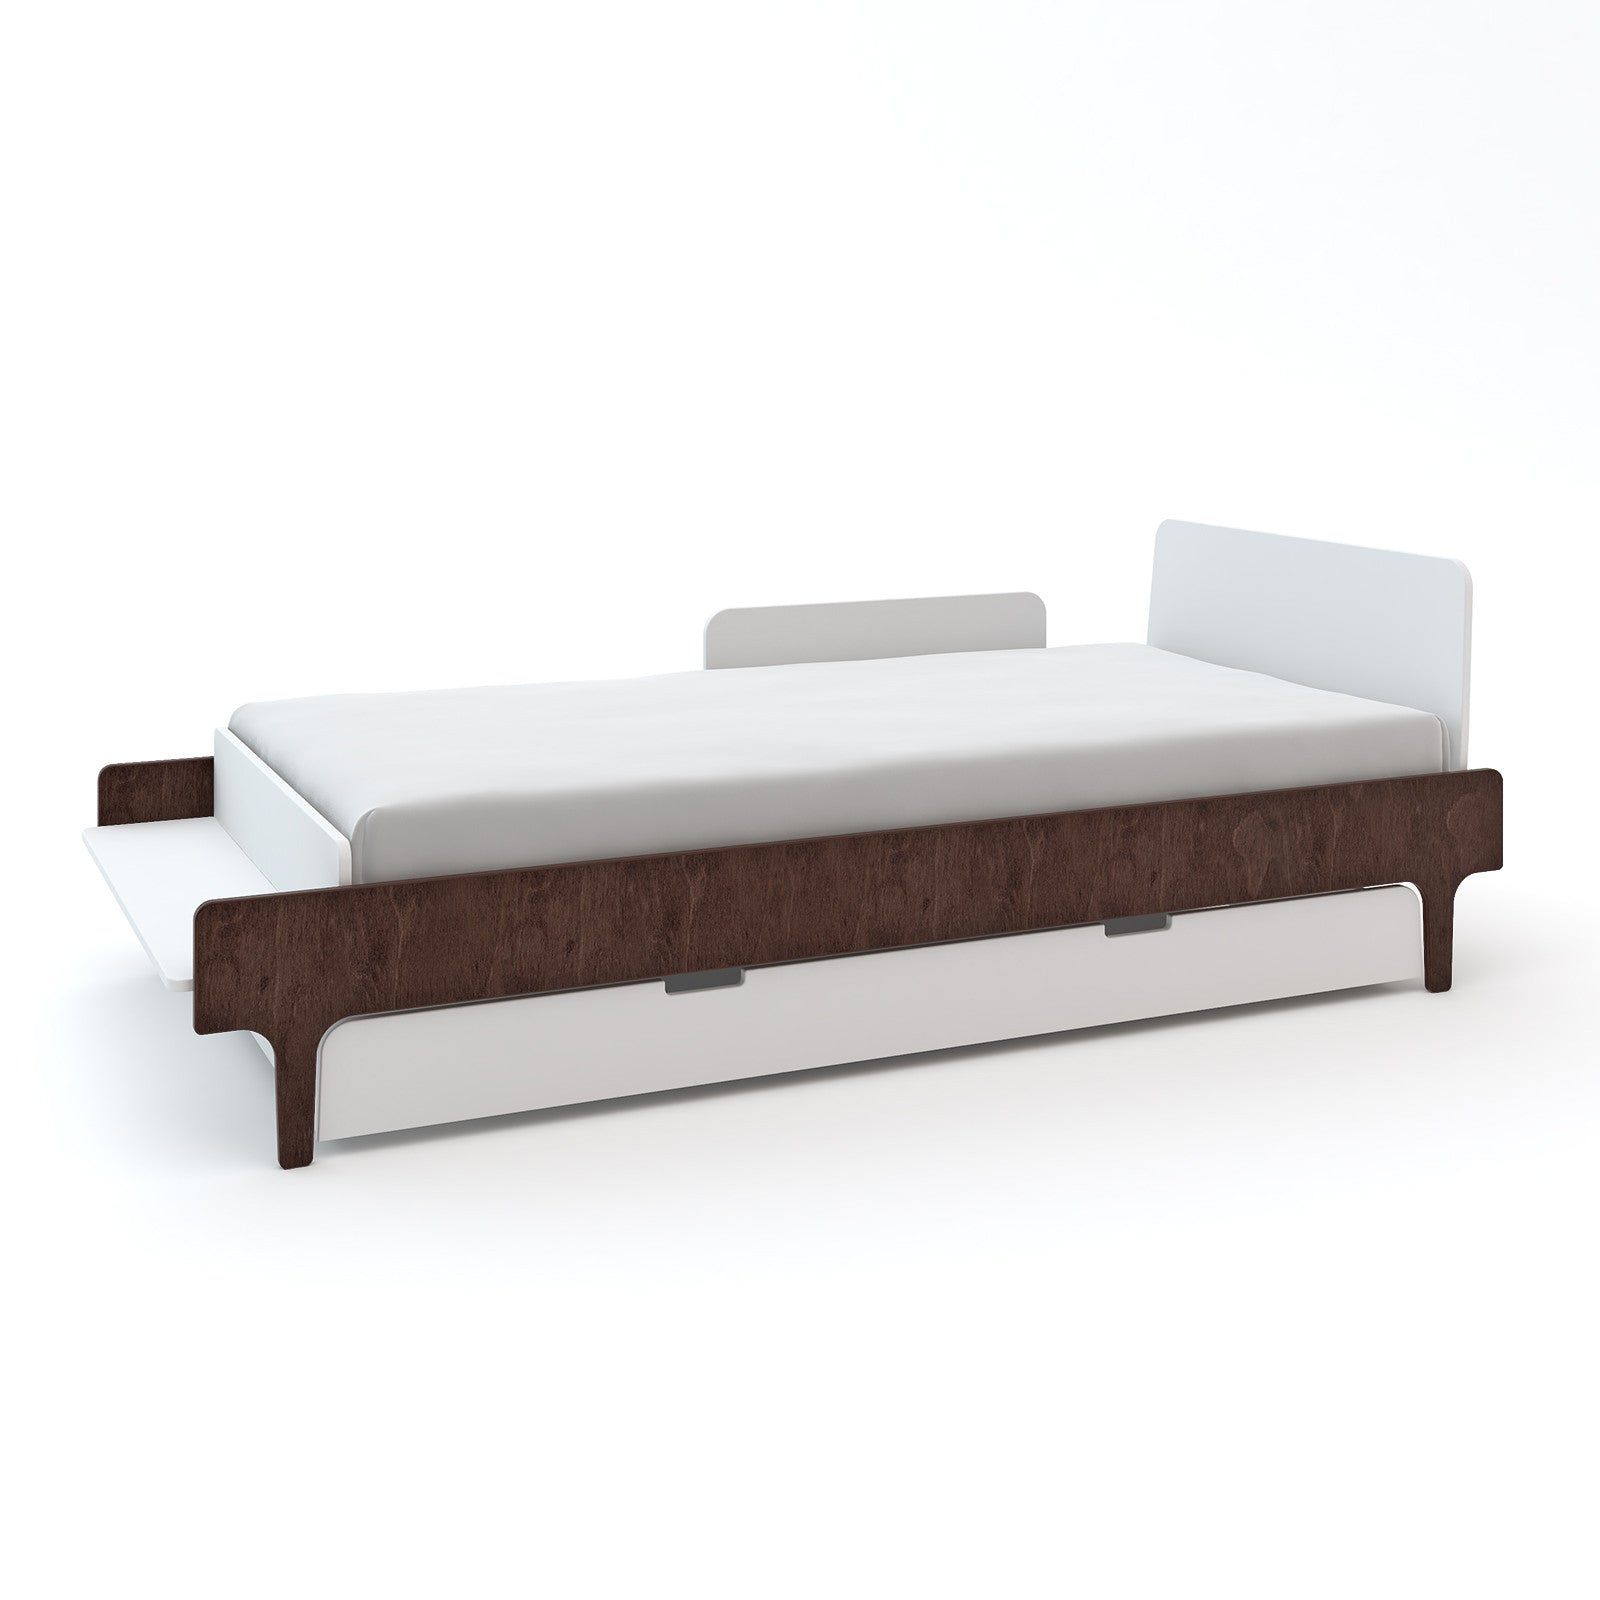 White/Walnut with Trundle and Security Rail